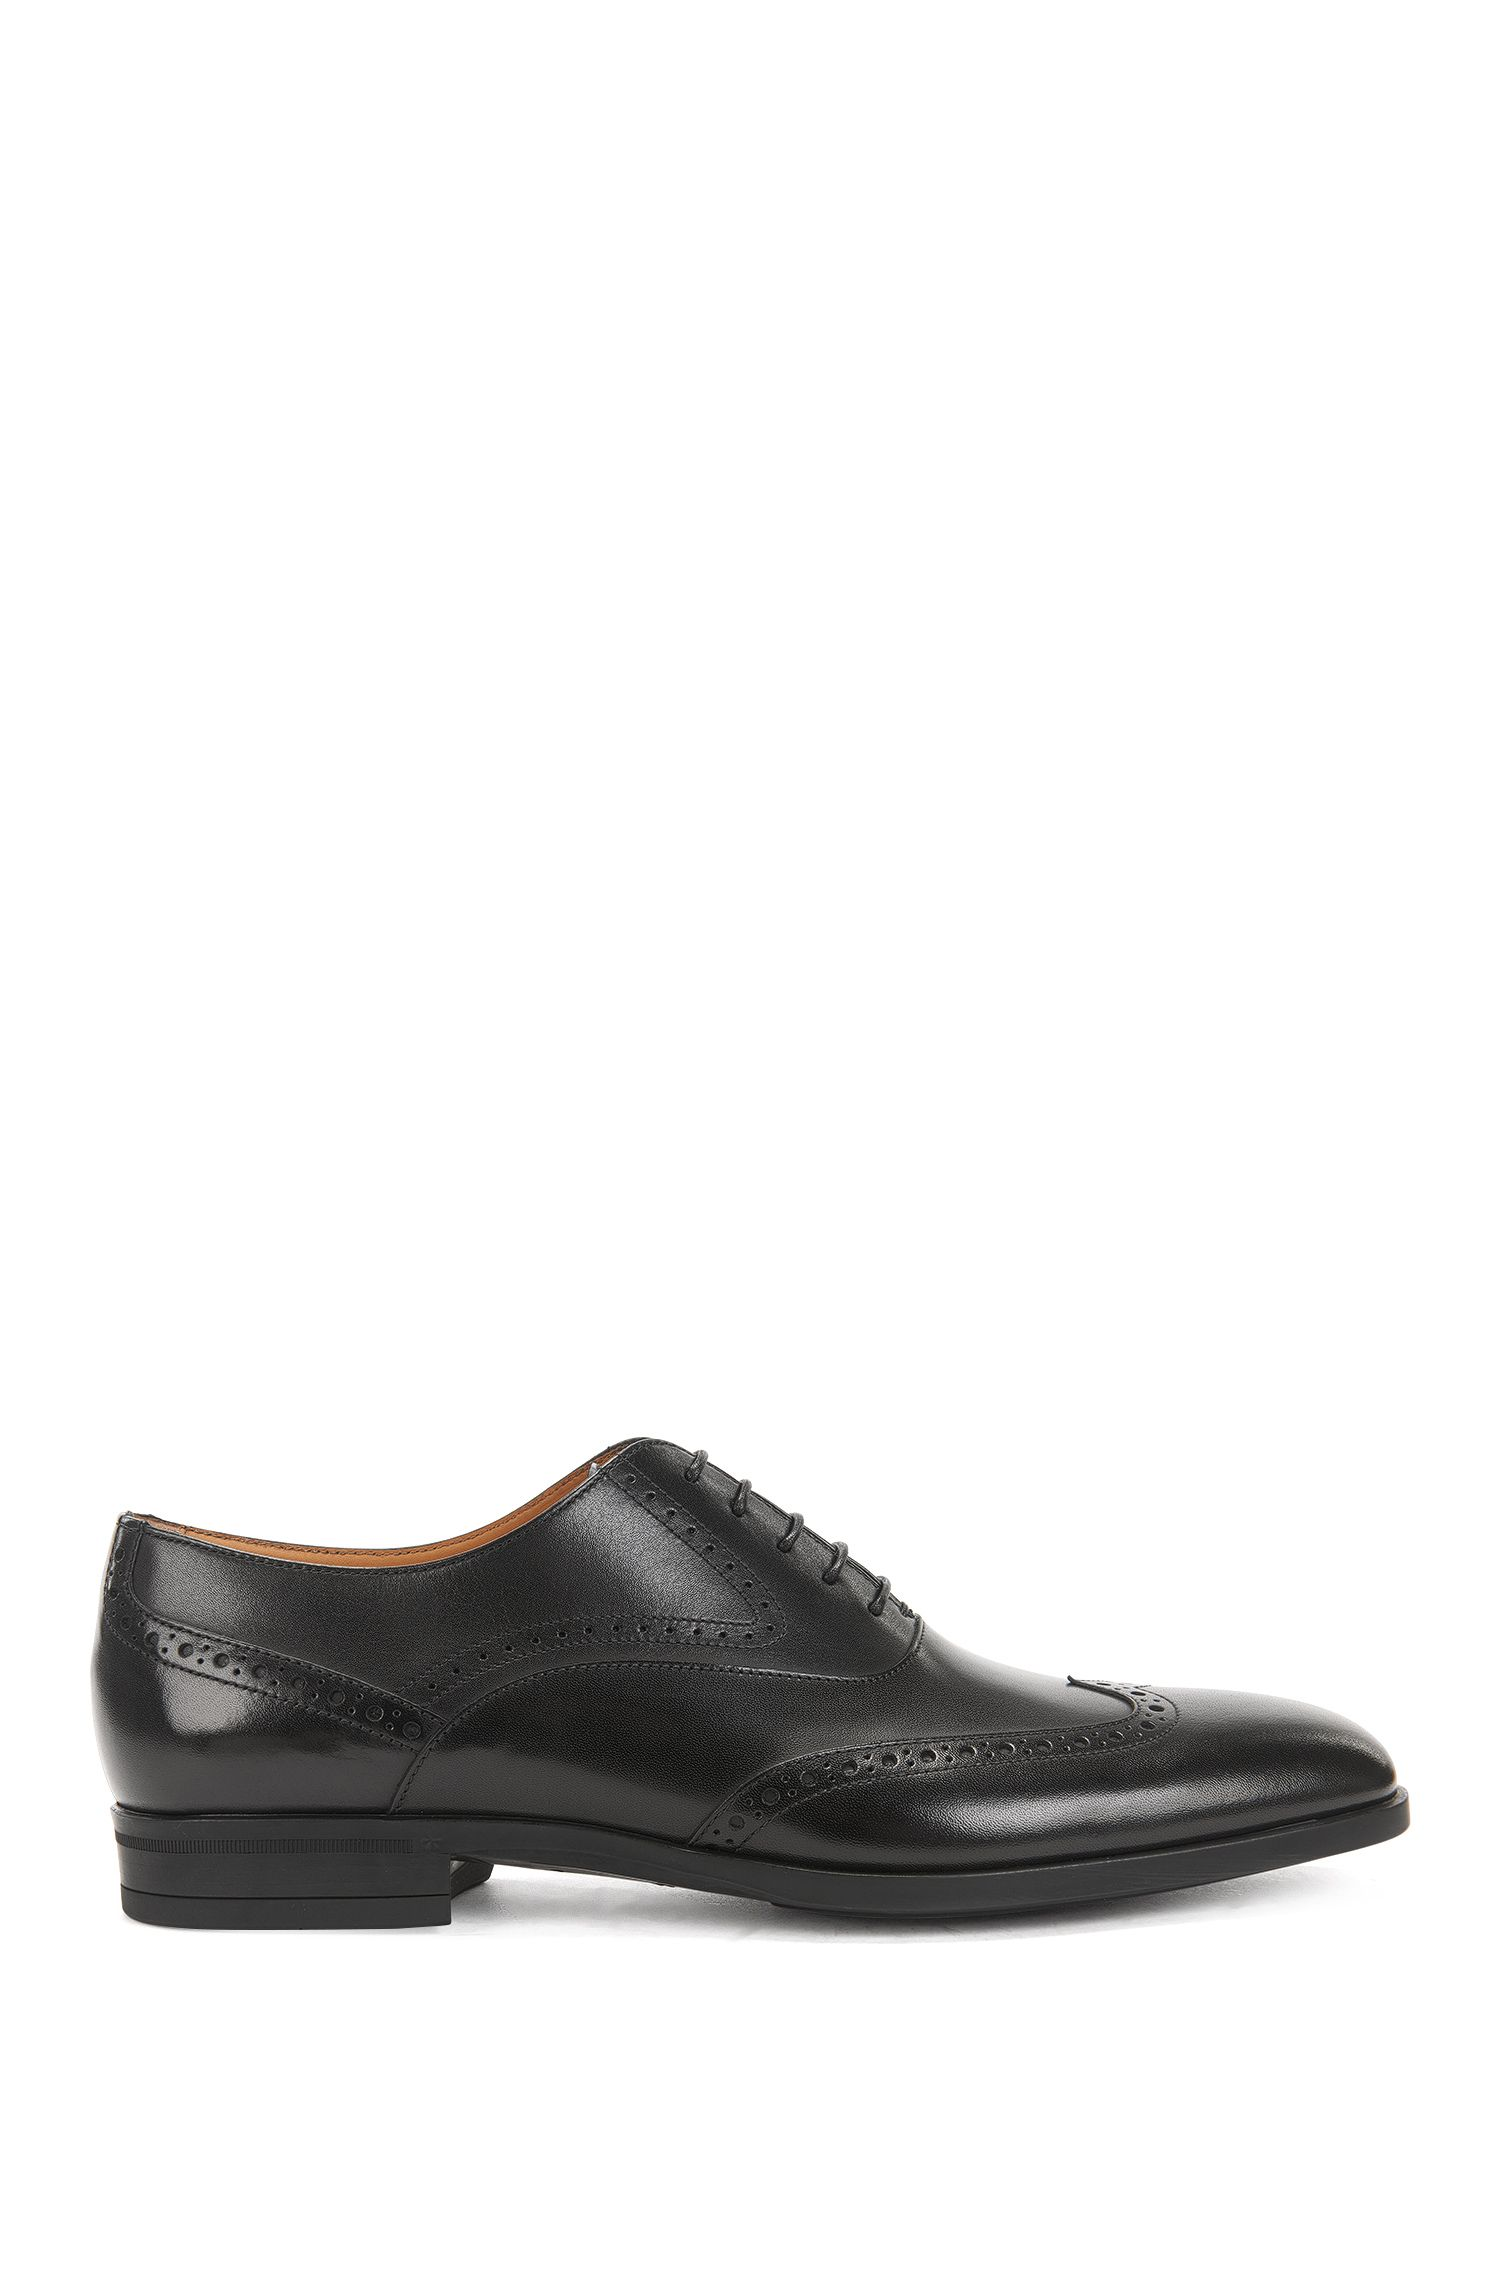 Italian-made burnished leather Oxford shoes with brogue detailing